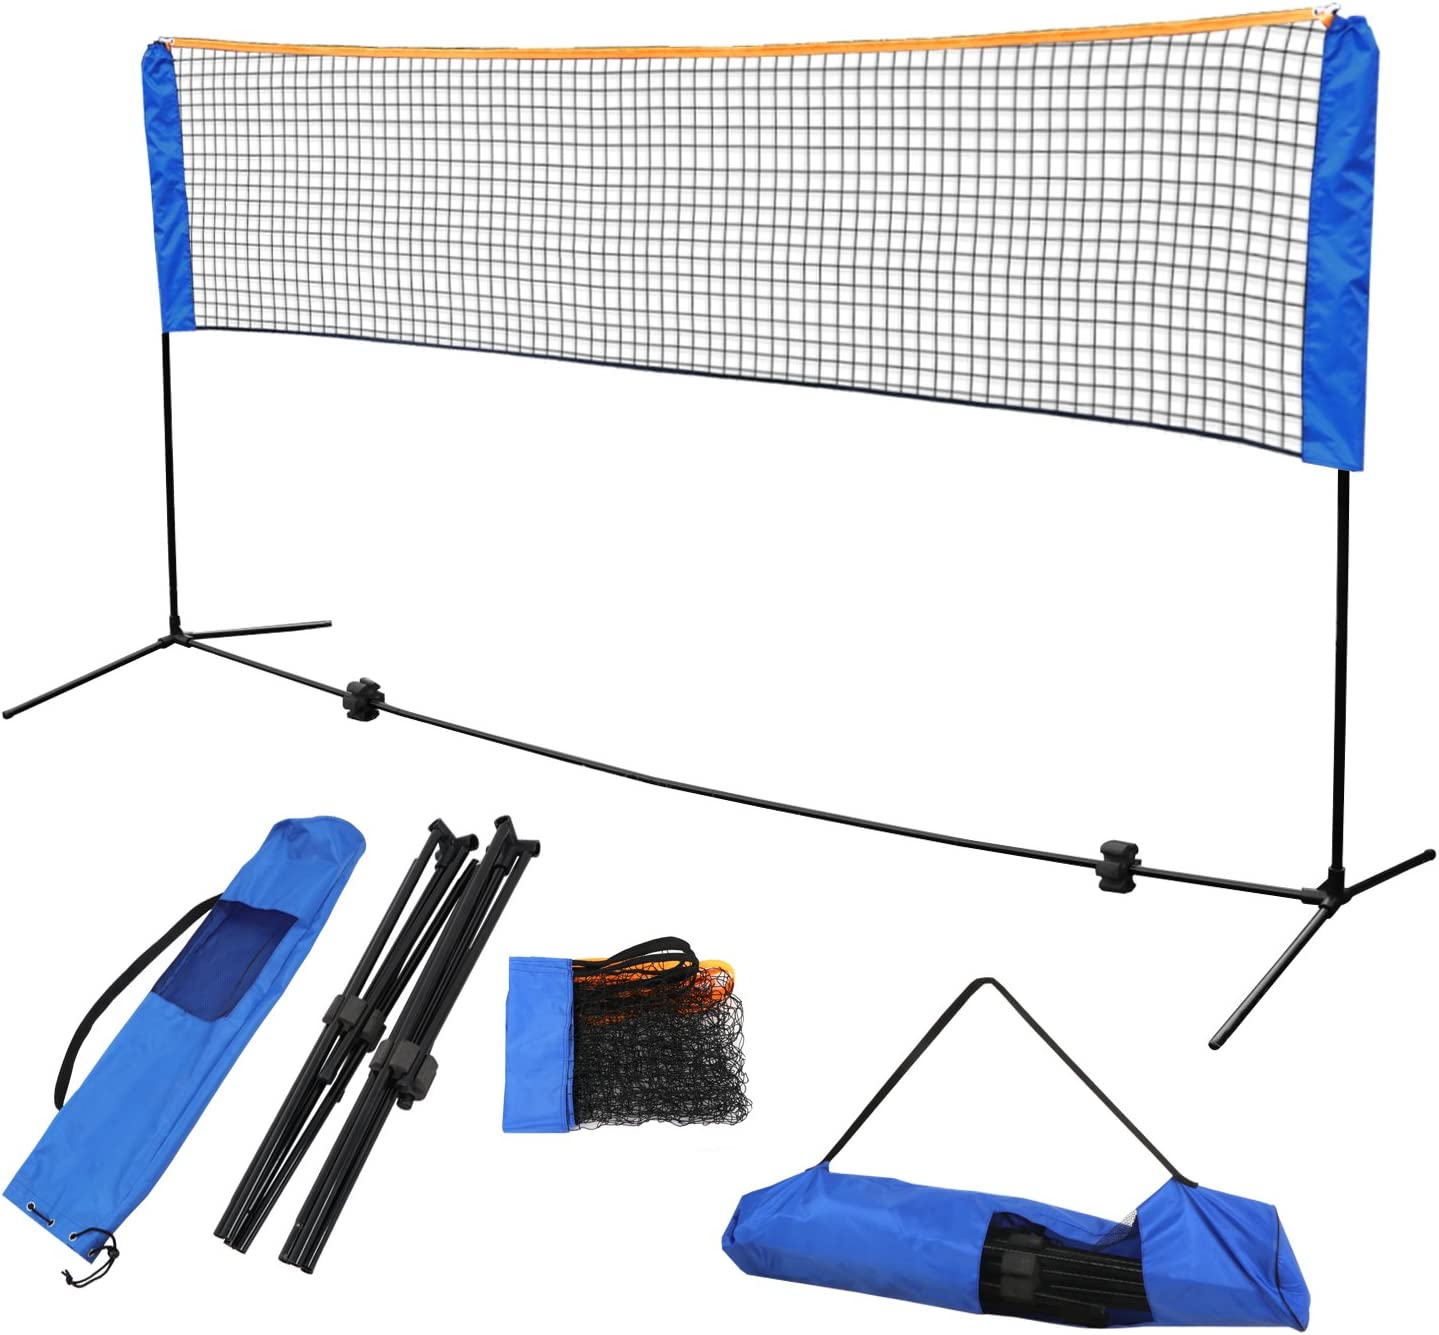 20ft Foldable Badminton Net Outdoor Volleyball Professional Training Sport Gift